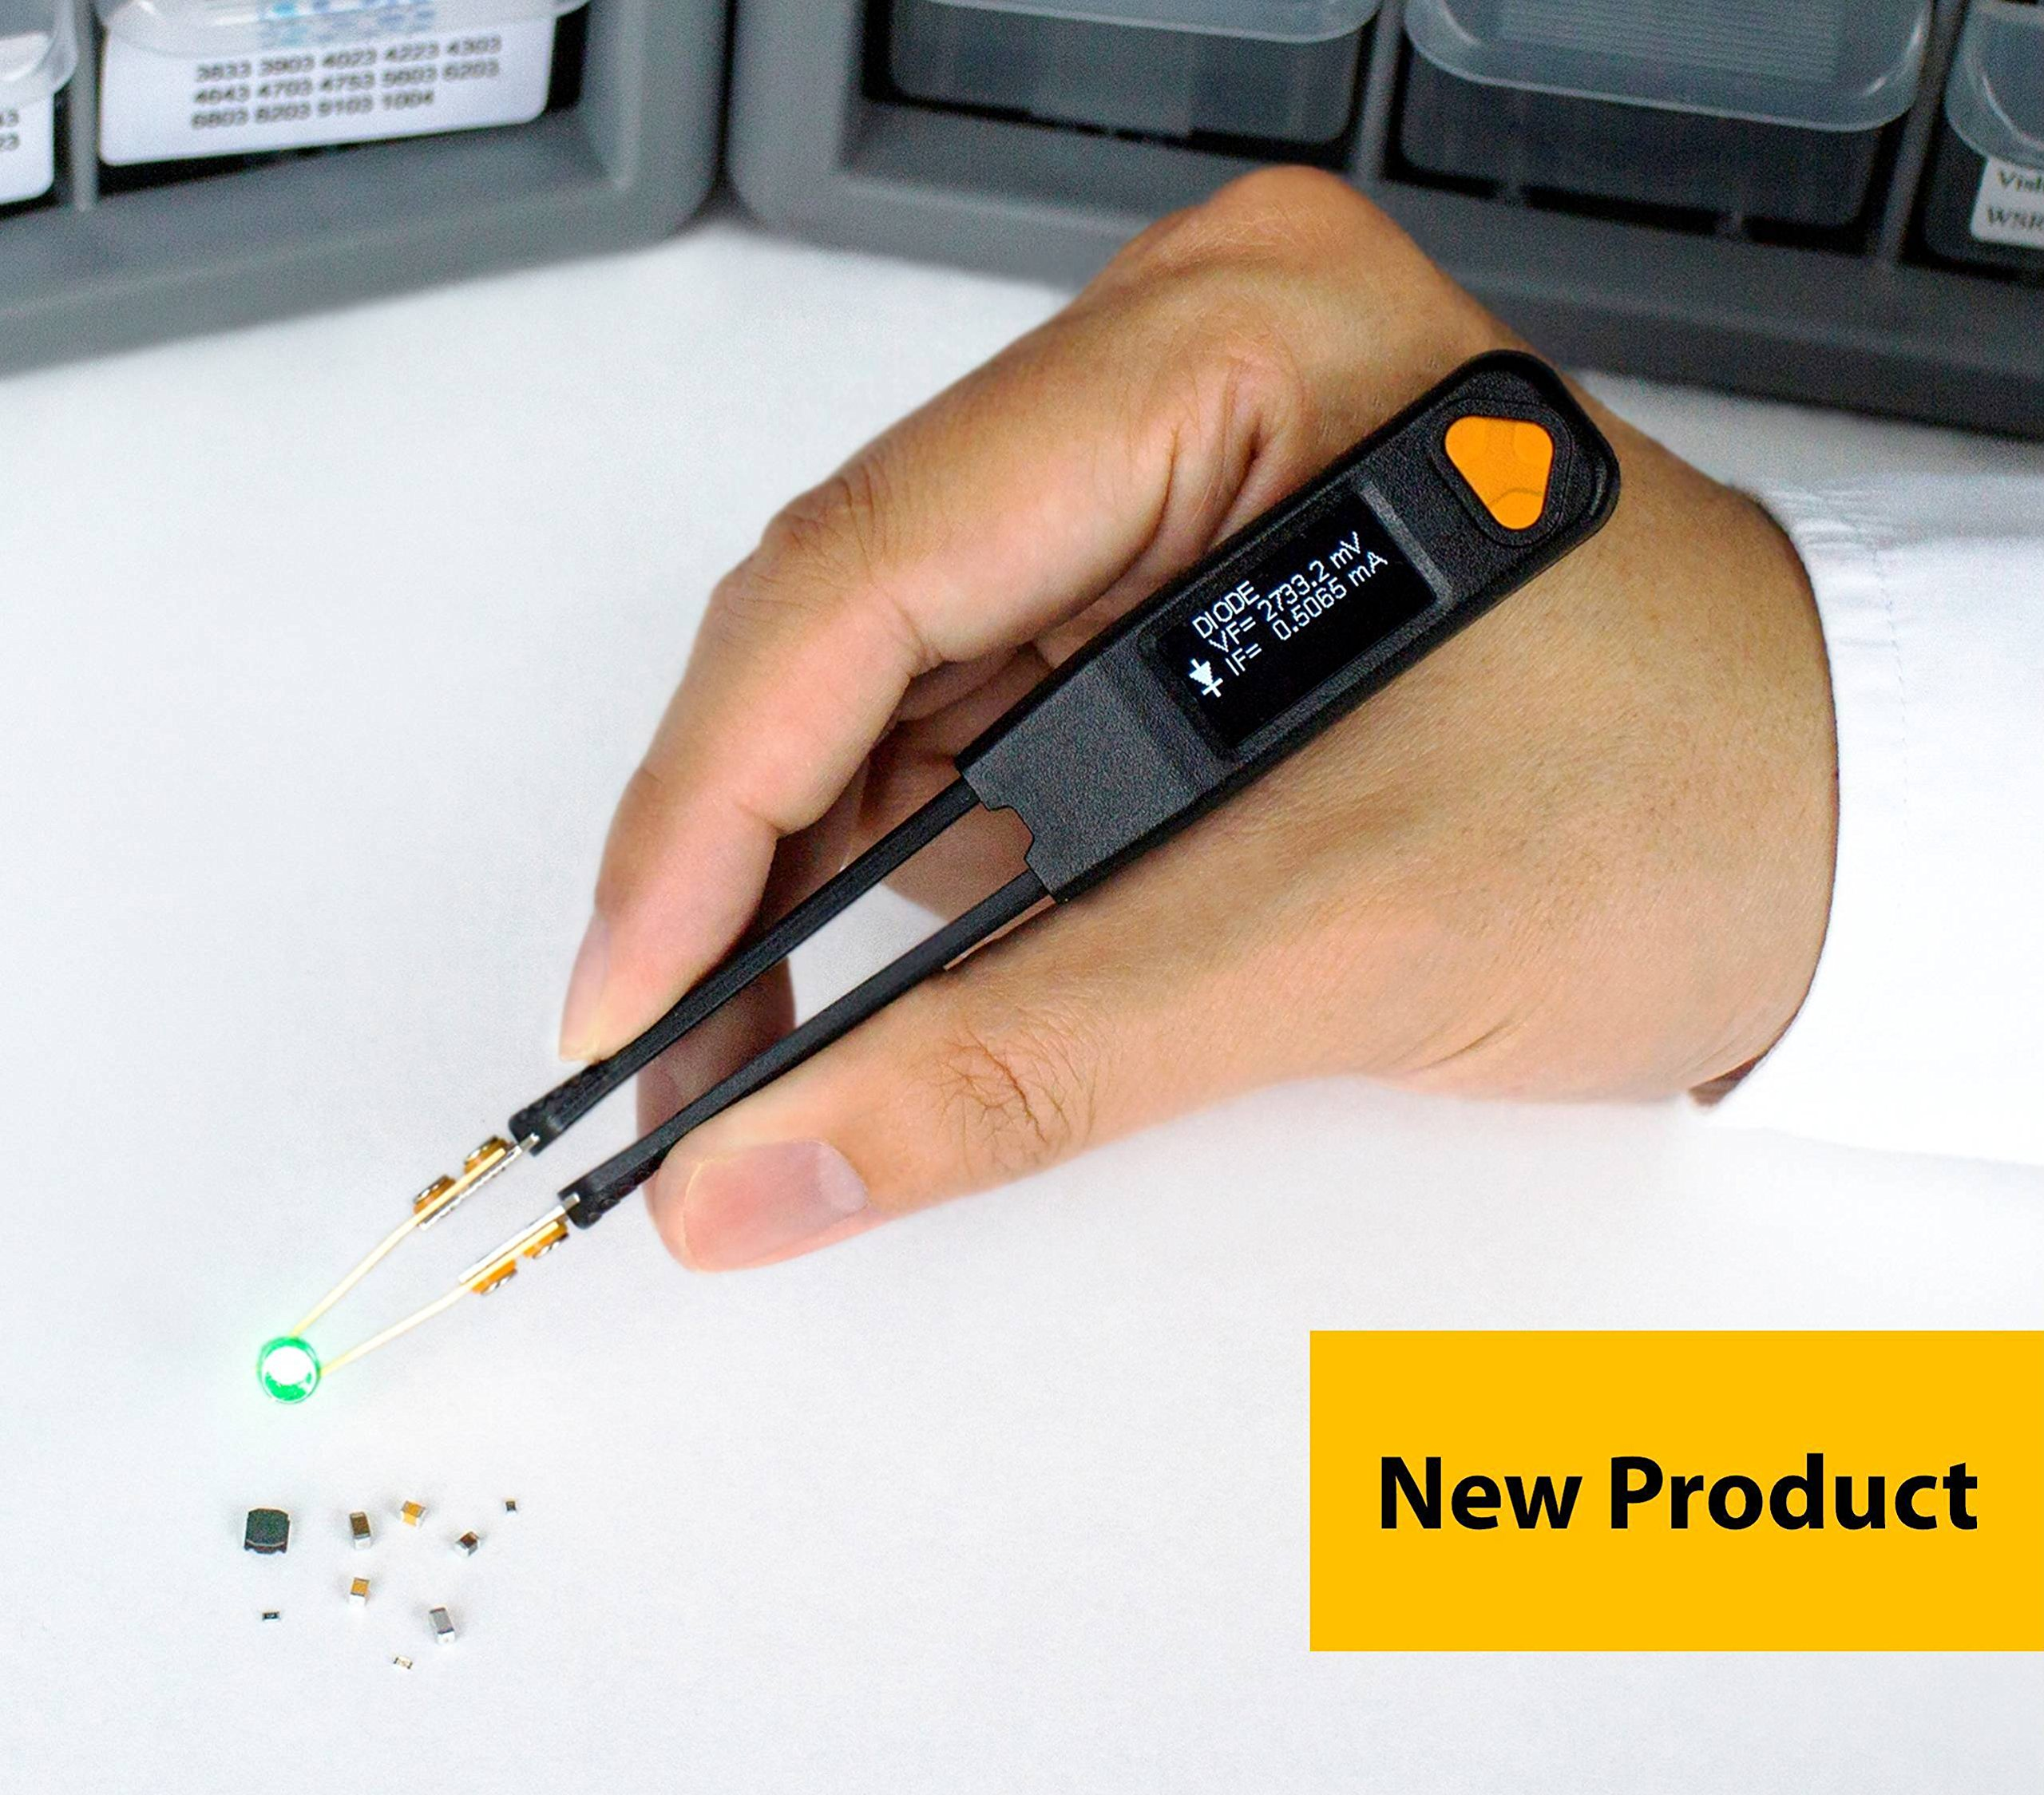 LCR Research Pro1 Plus with Ultra Precise Test Tips - LCR Meter / LED Tester / ESR Meter / Digital Multimeter / SMD Tester / Smart SMD Tweezers / In Circuit Debugger